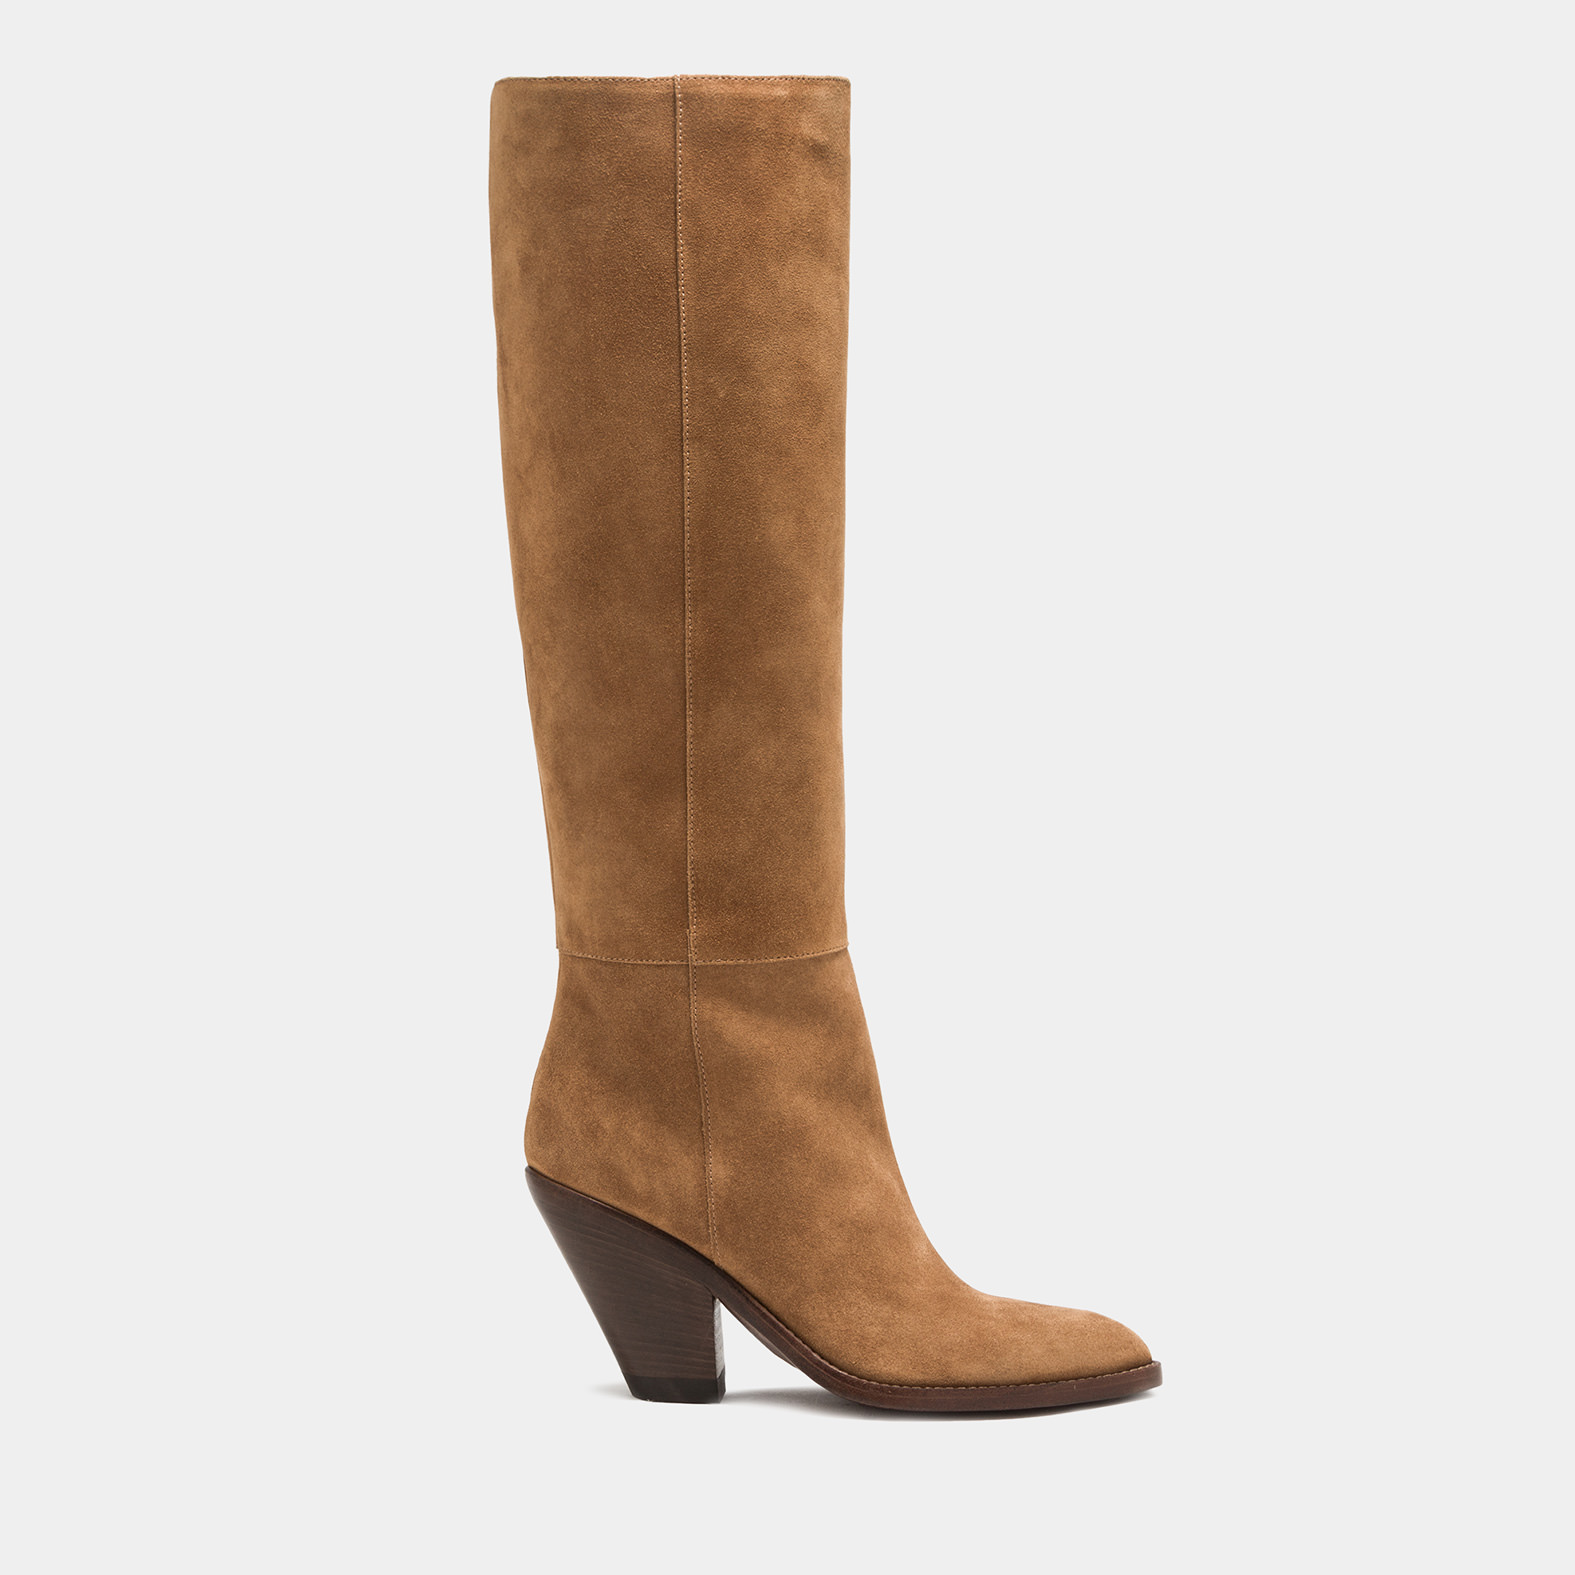 BUTTERO: JANE HIGH HEEL BOOTS IN COPPER BROWN SUEDE